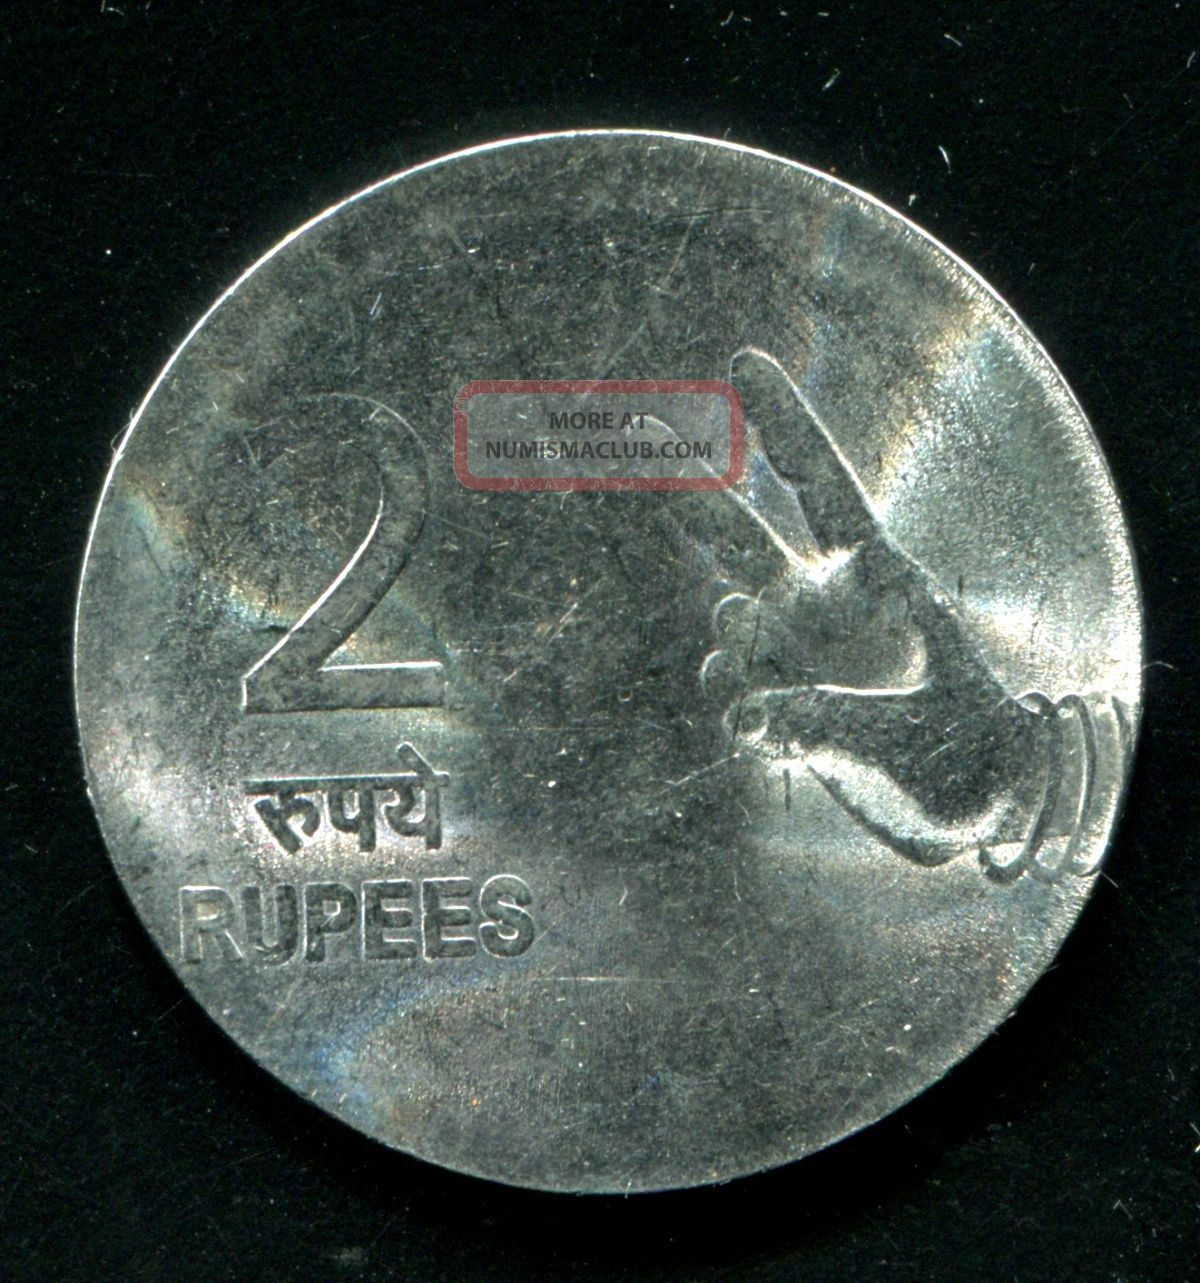 India 2 Rupees Coin Struck On 1 Rupee Planchet,  Very Very Rare Variety,  Top Grade Coins: World photo